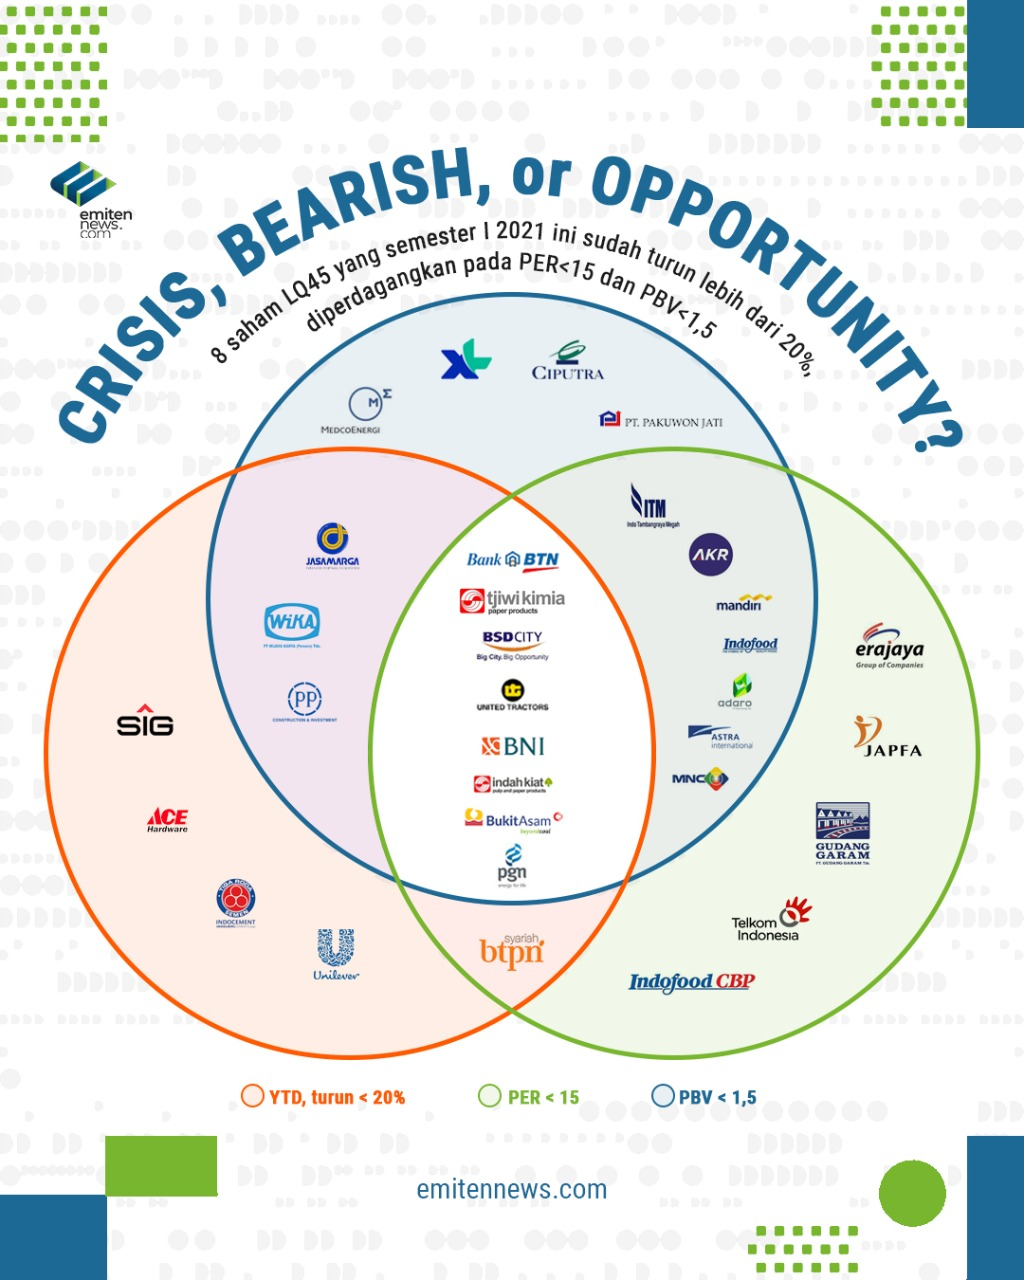 Crisis, Bearish, or Opportunity?